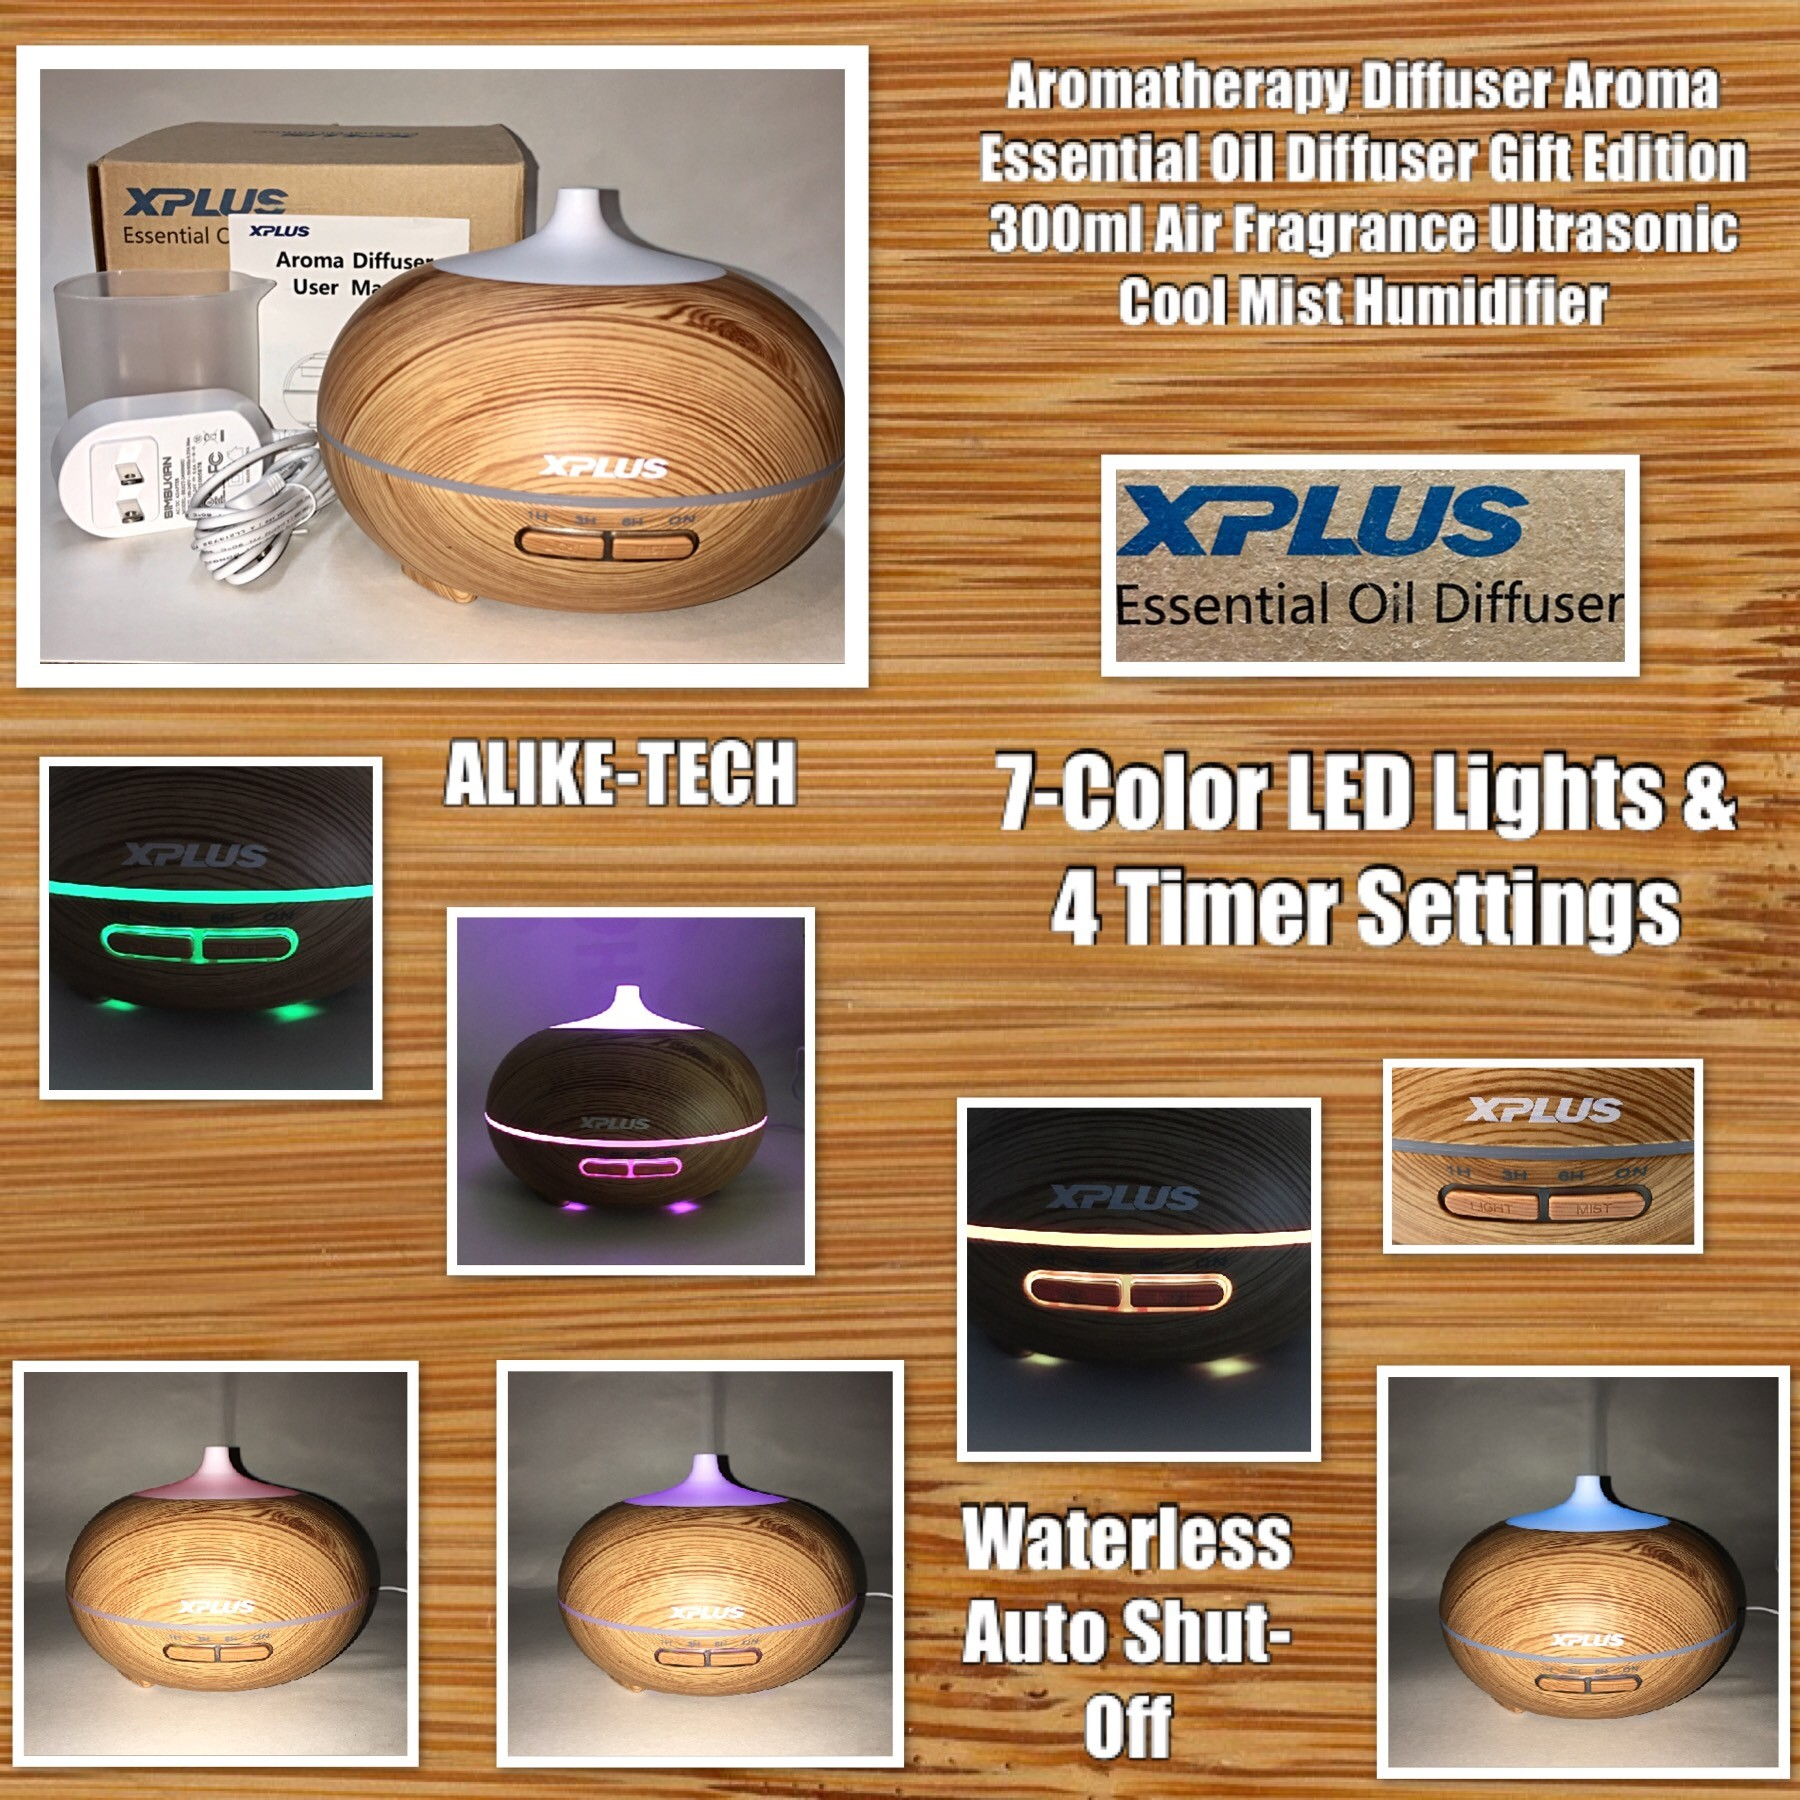 Aromatherapy Diffuser Aroma Essential Oil Diffuser Gift Edition 300ml Air Fragrance Ultrasonic Cool Mist Humidifier 7-Color LED Lights & 4 Timer Settings, Waterless Auto Shut-Off (Brown) - By ALIKE